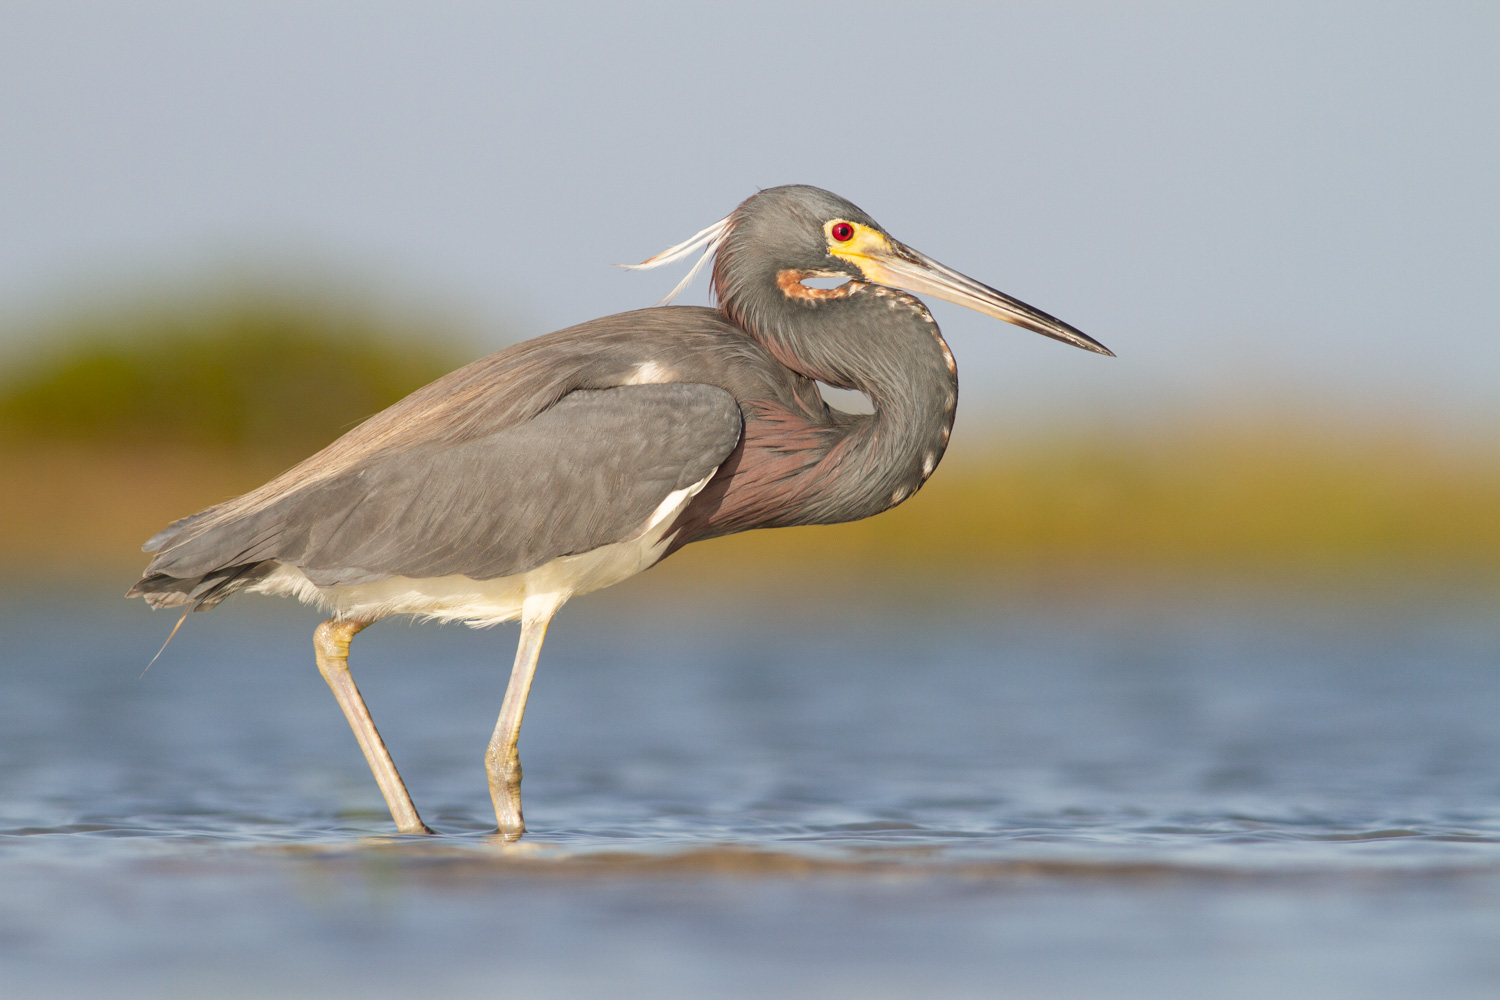 aperture priority mode and shutter priority mode tricolored heron